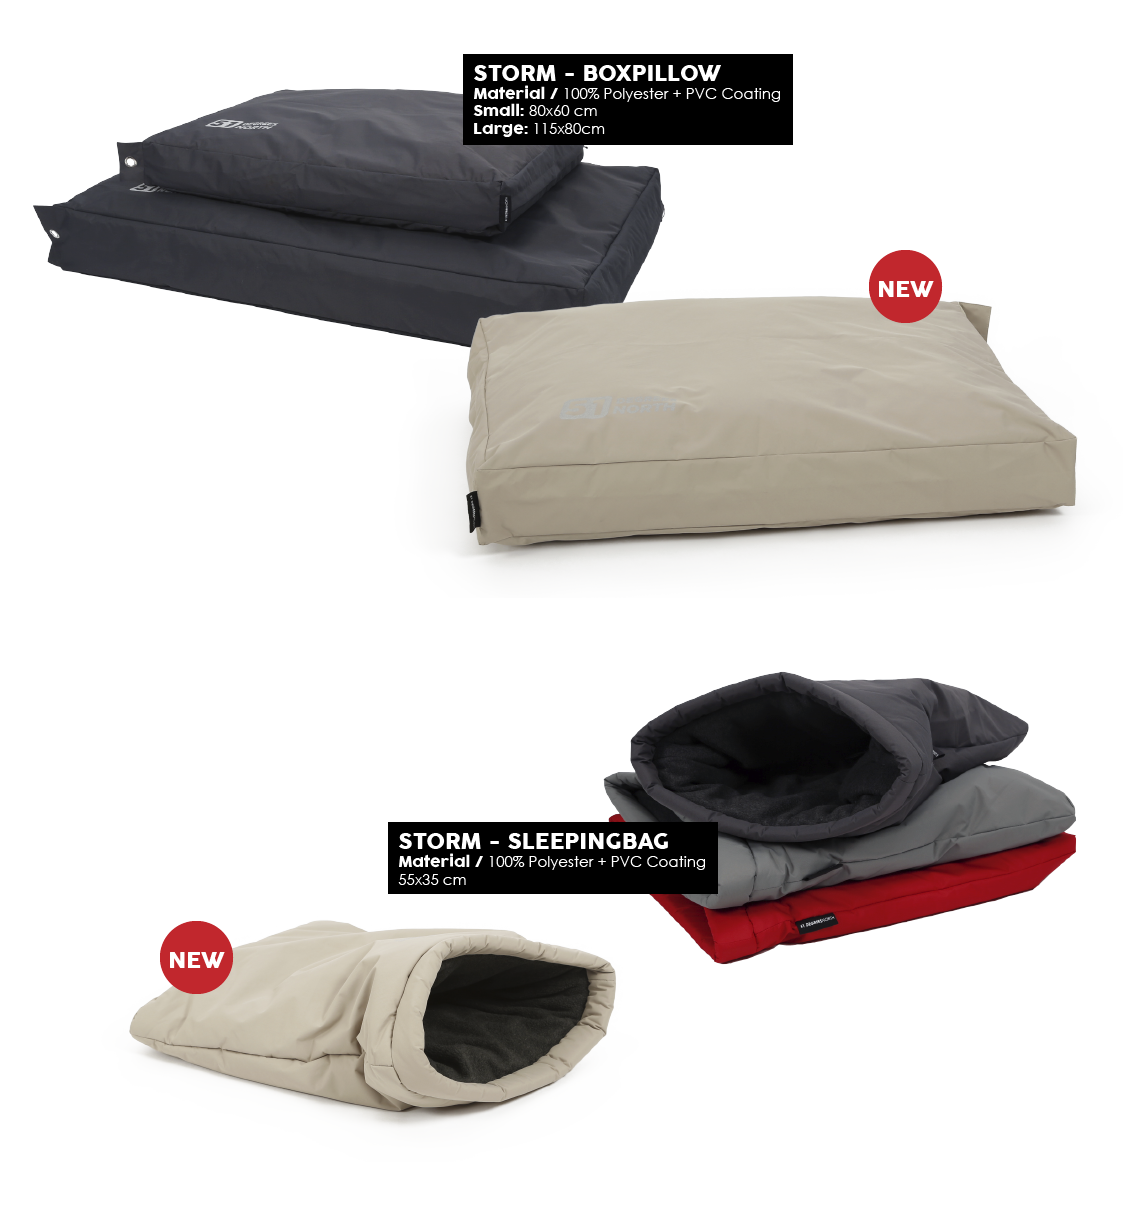 51 Degrees North Storm Boxpillow Sleepingbag